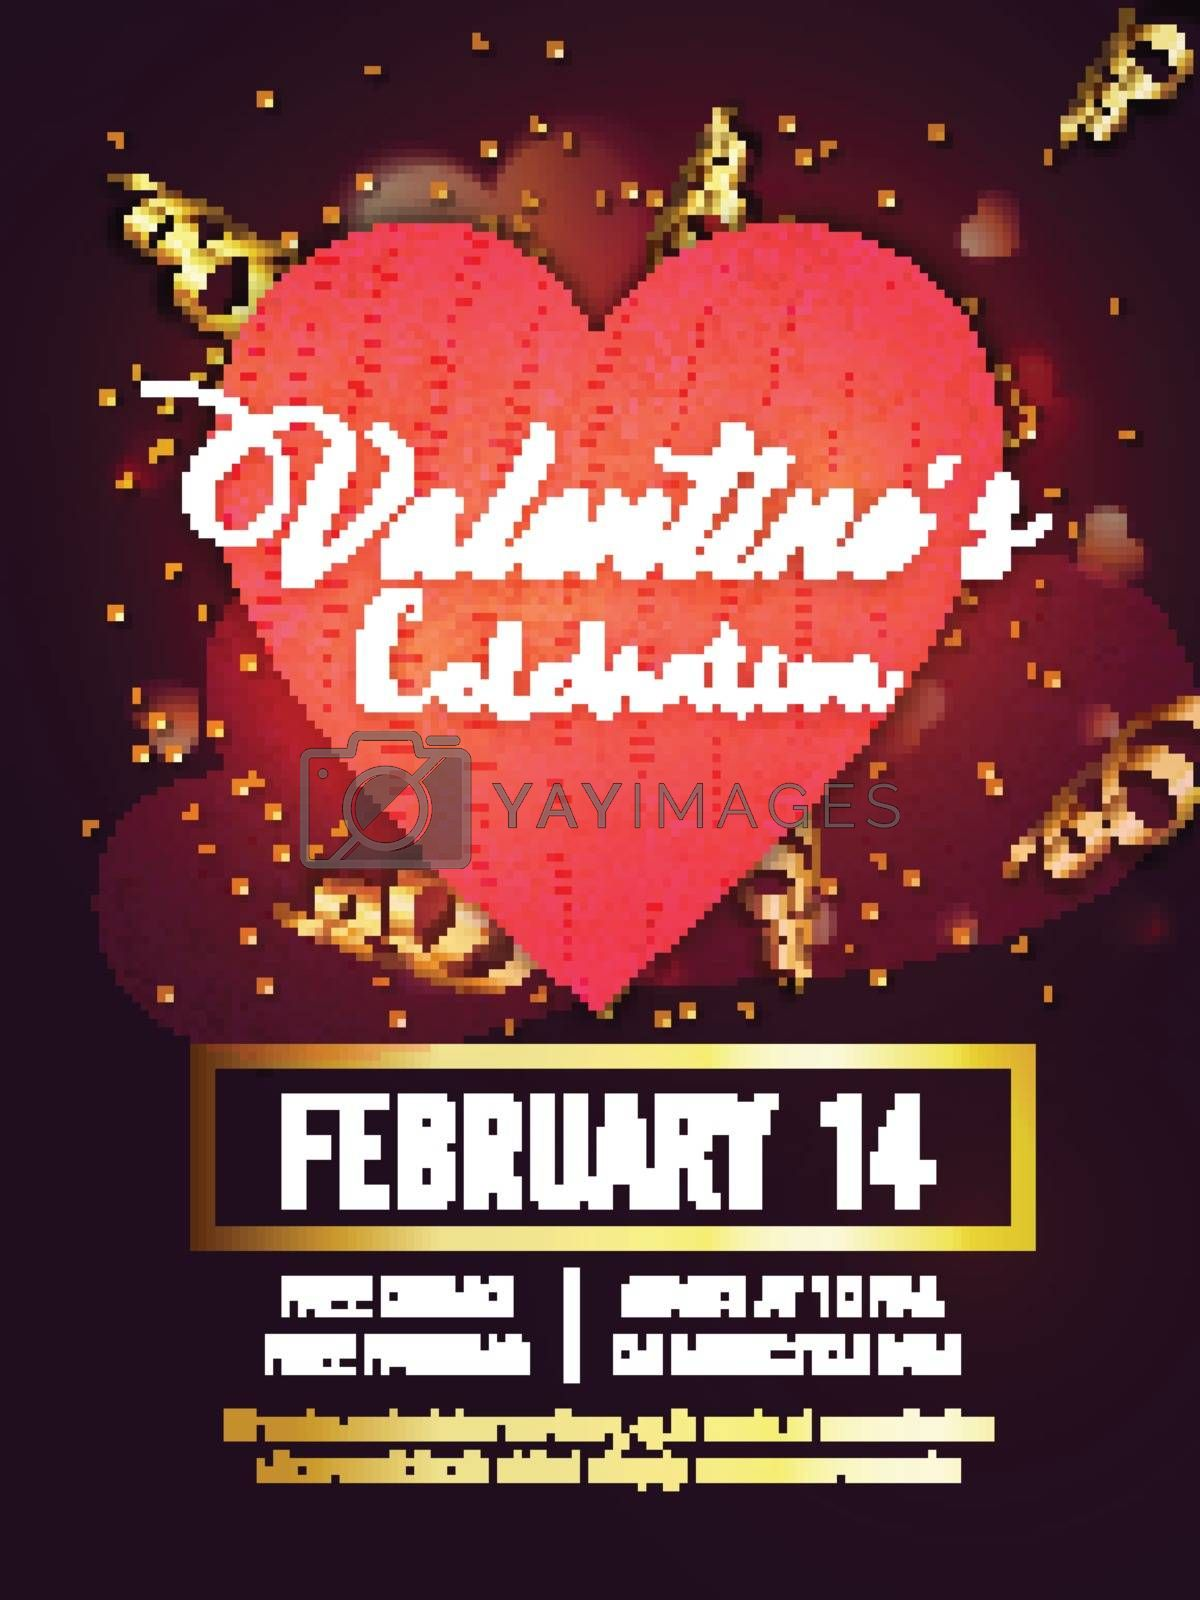 Happy Valentine's Day Party celebration Template, Banner, Flyer or Invitation Card design with Hearts and Golden Confetti decoration.